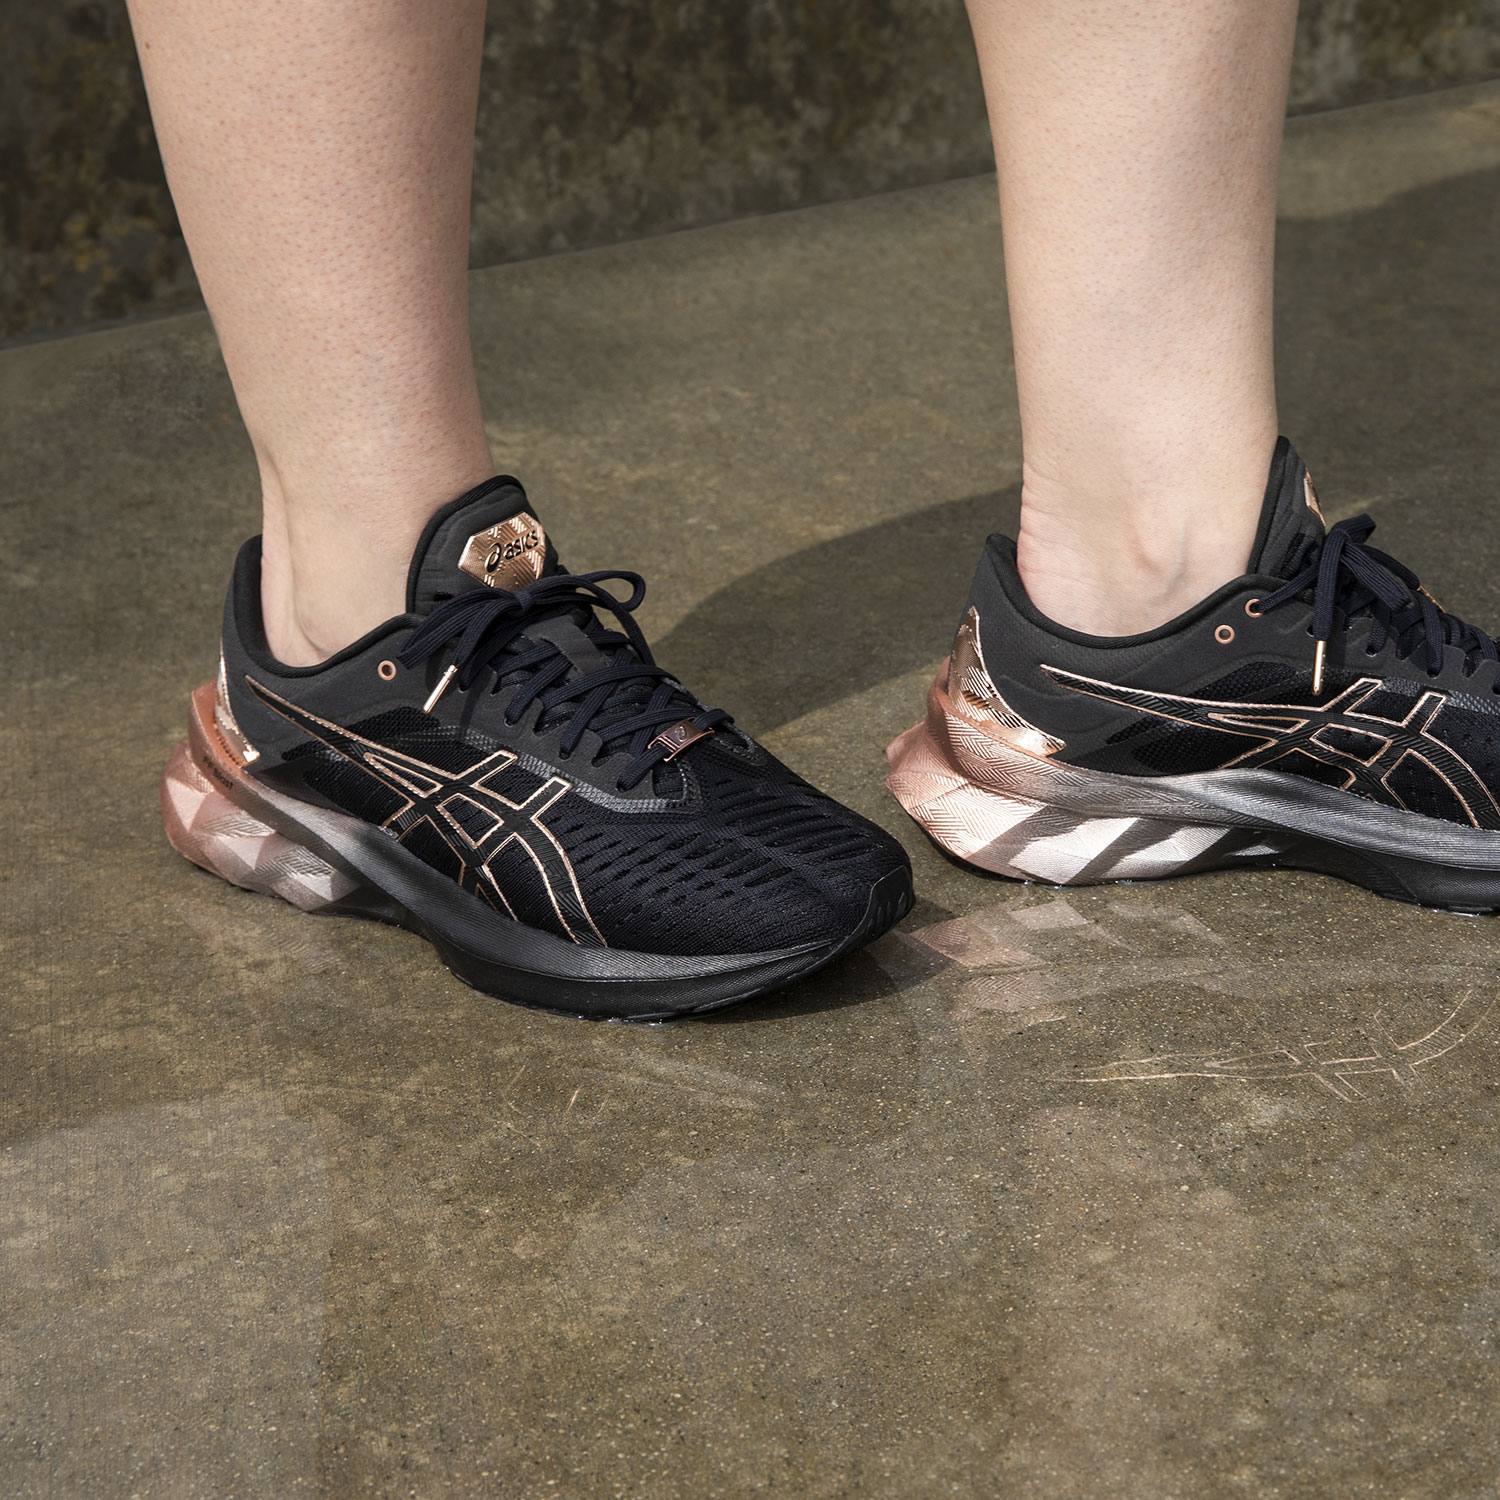 Asics Novablast Platinum - Black/Rose Gold